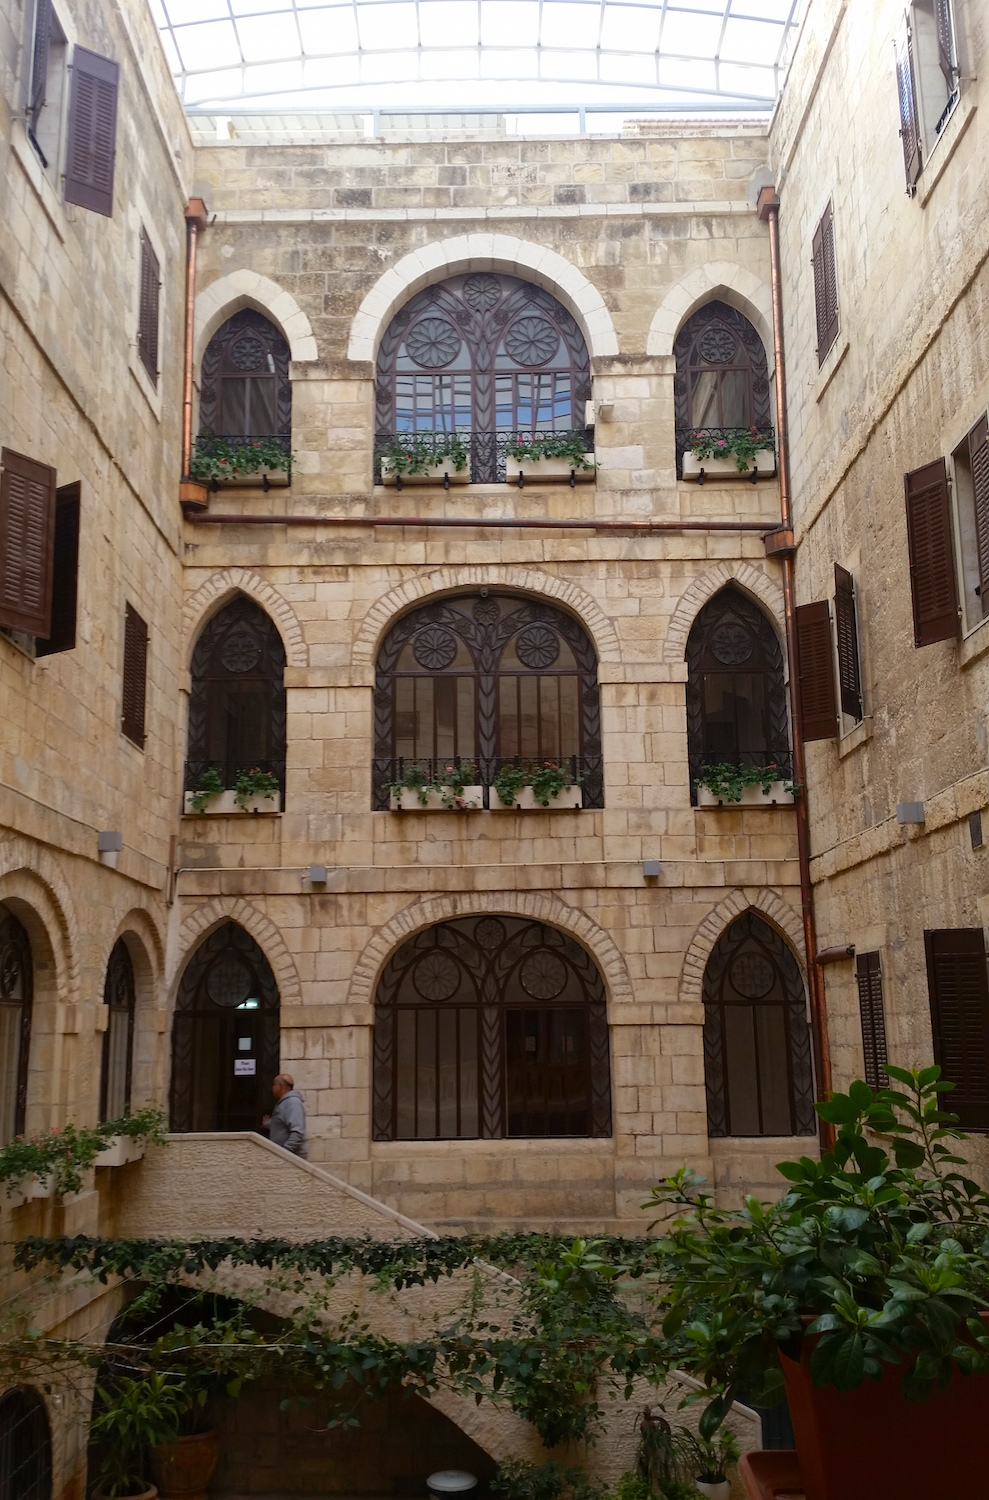 A marvelous courtyard is open to the sky inside Jerusalem's Casa Nova.